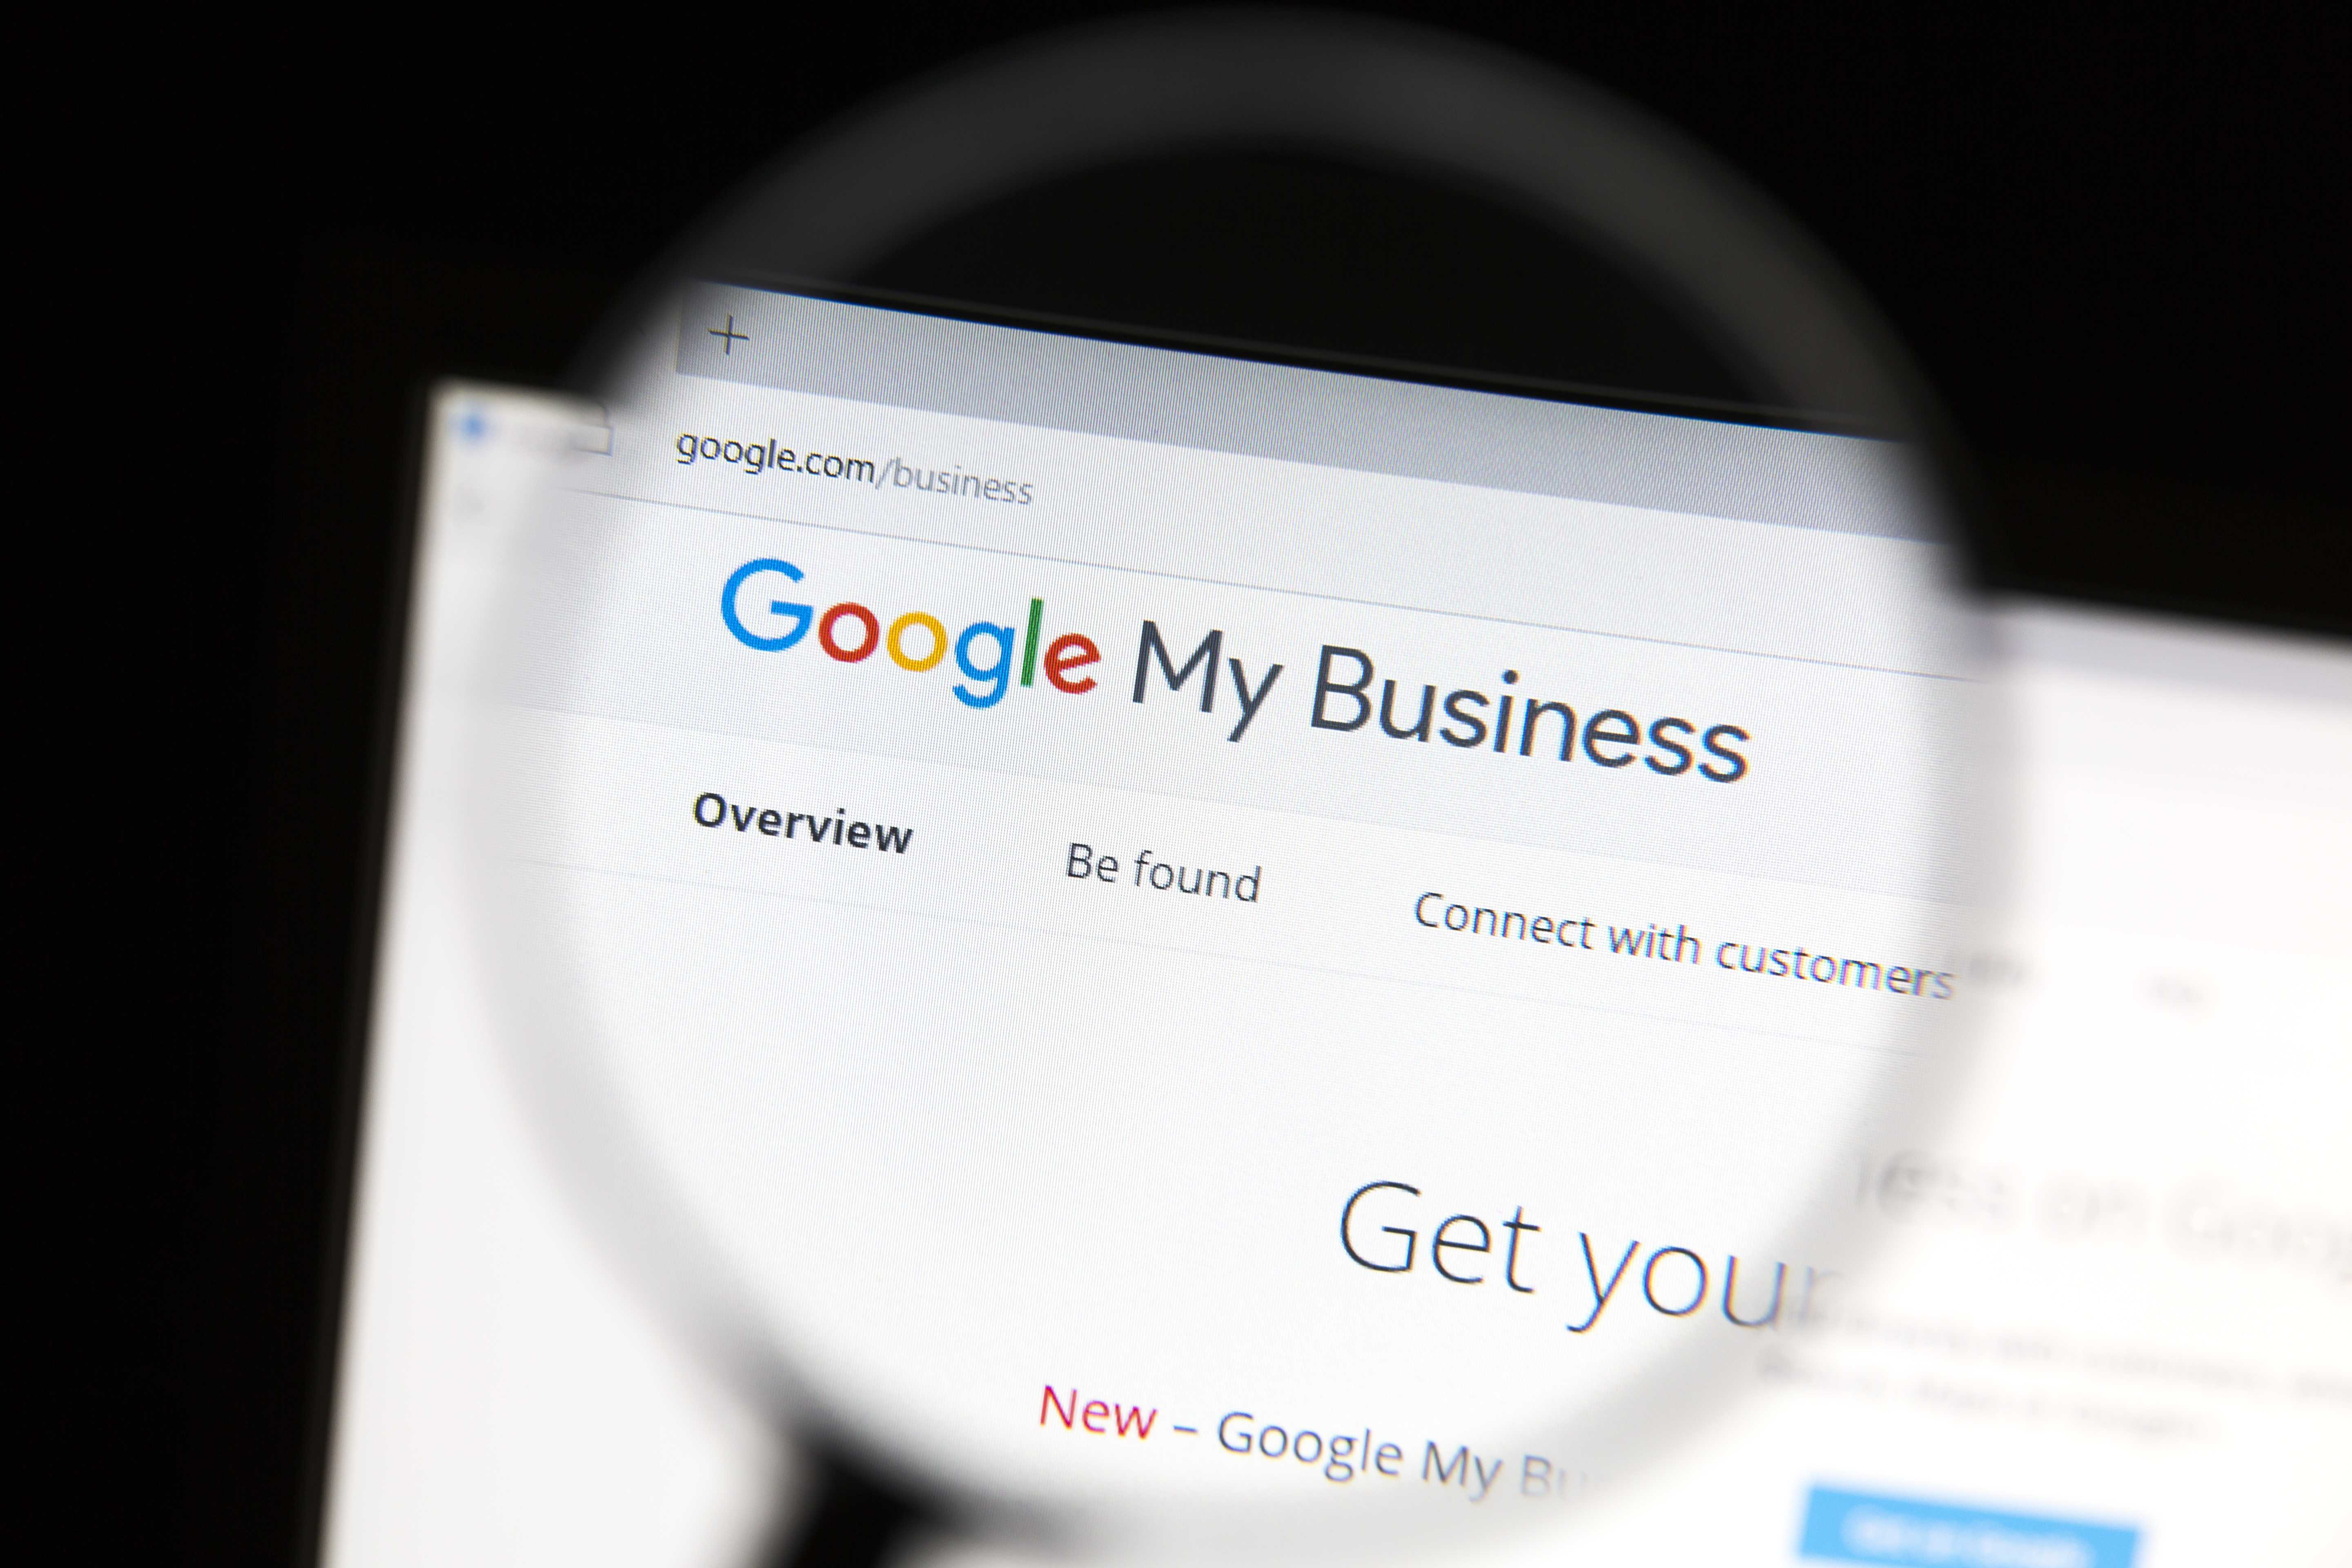 Google My Business Listing NH, Google For My Business in NH, Google My Business Website Serving NH